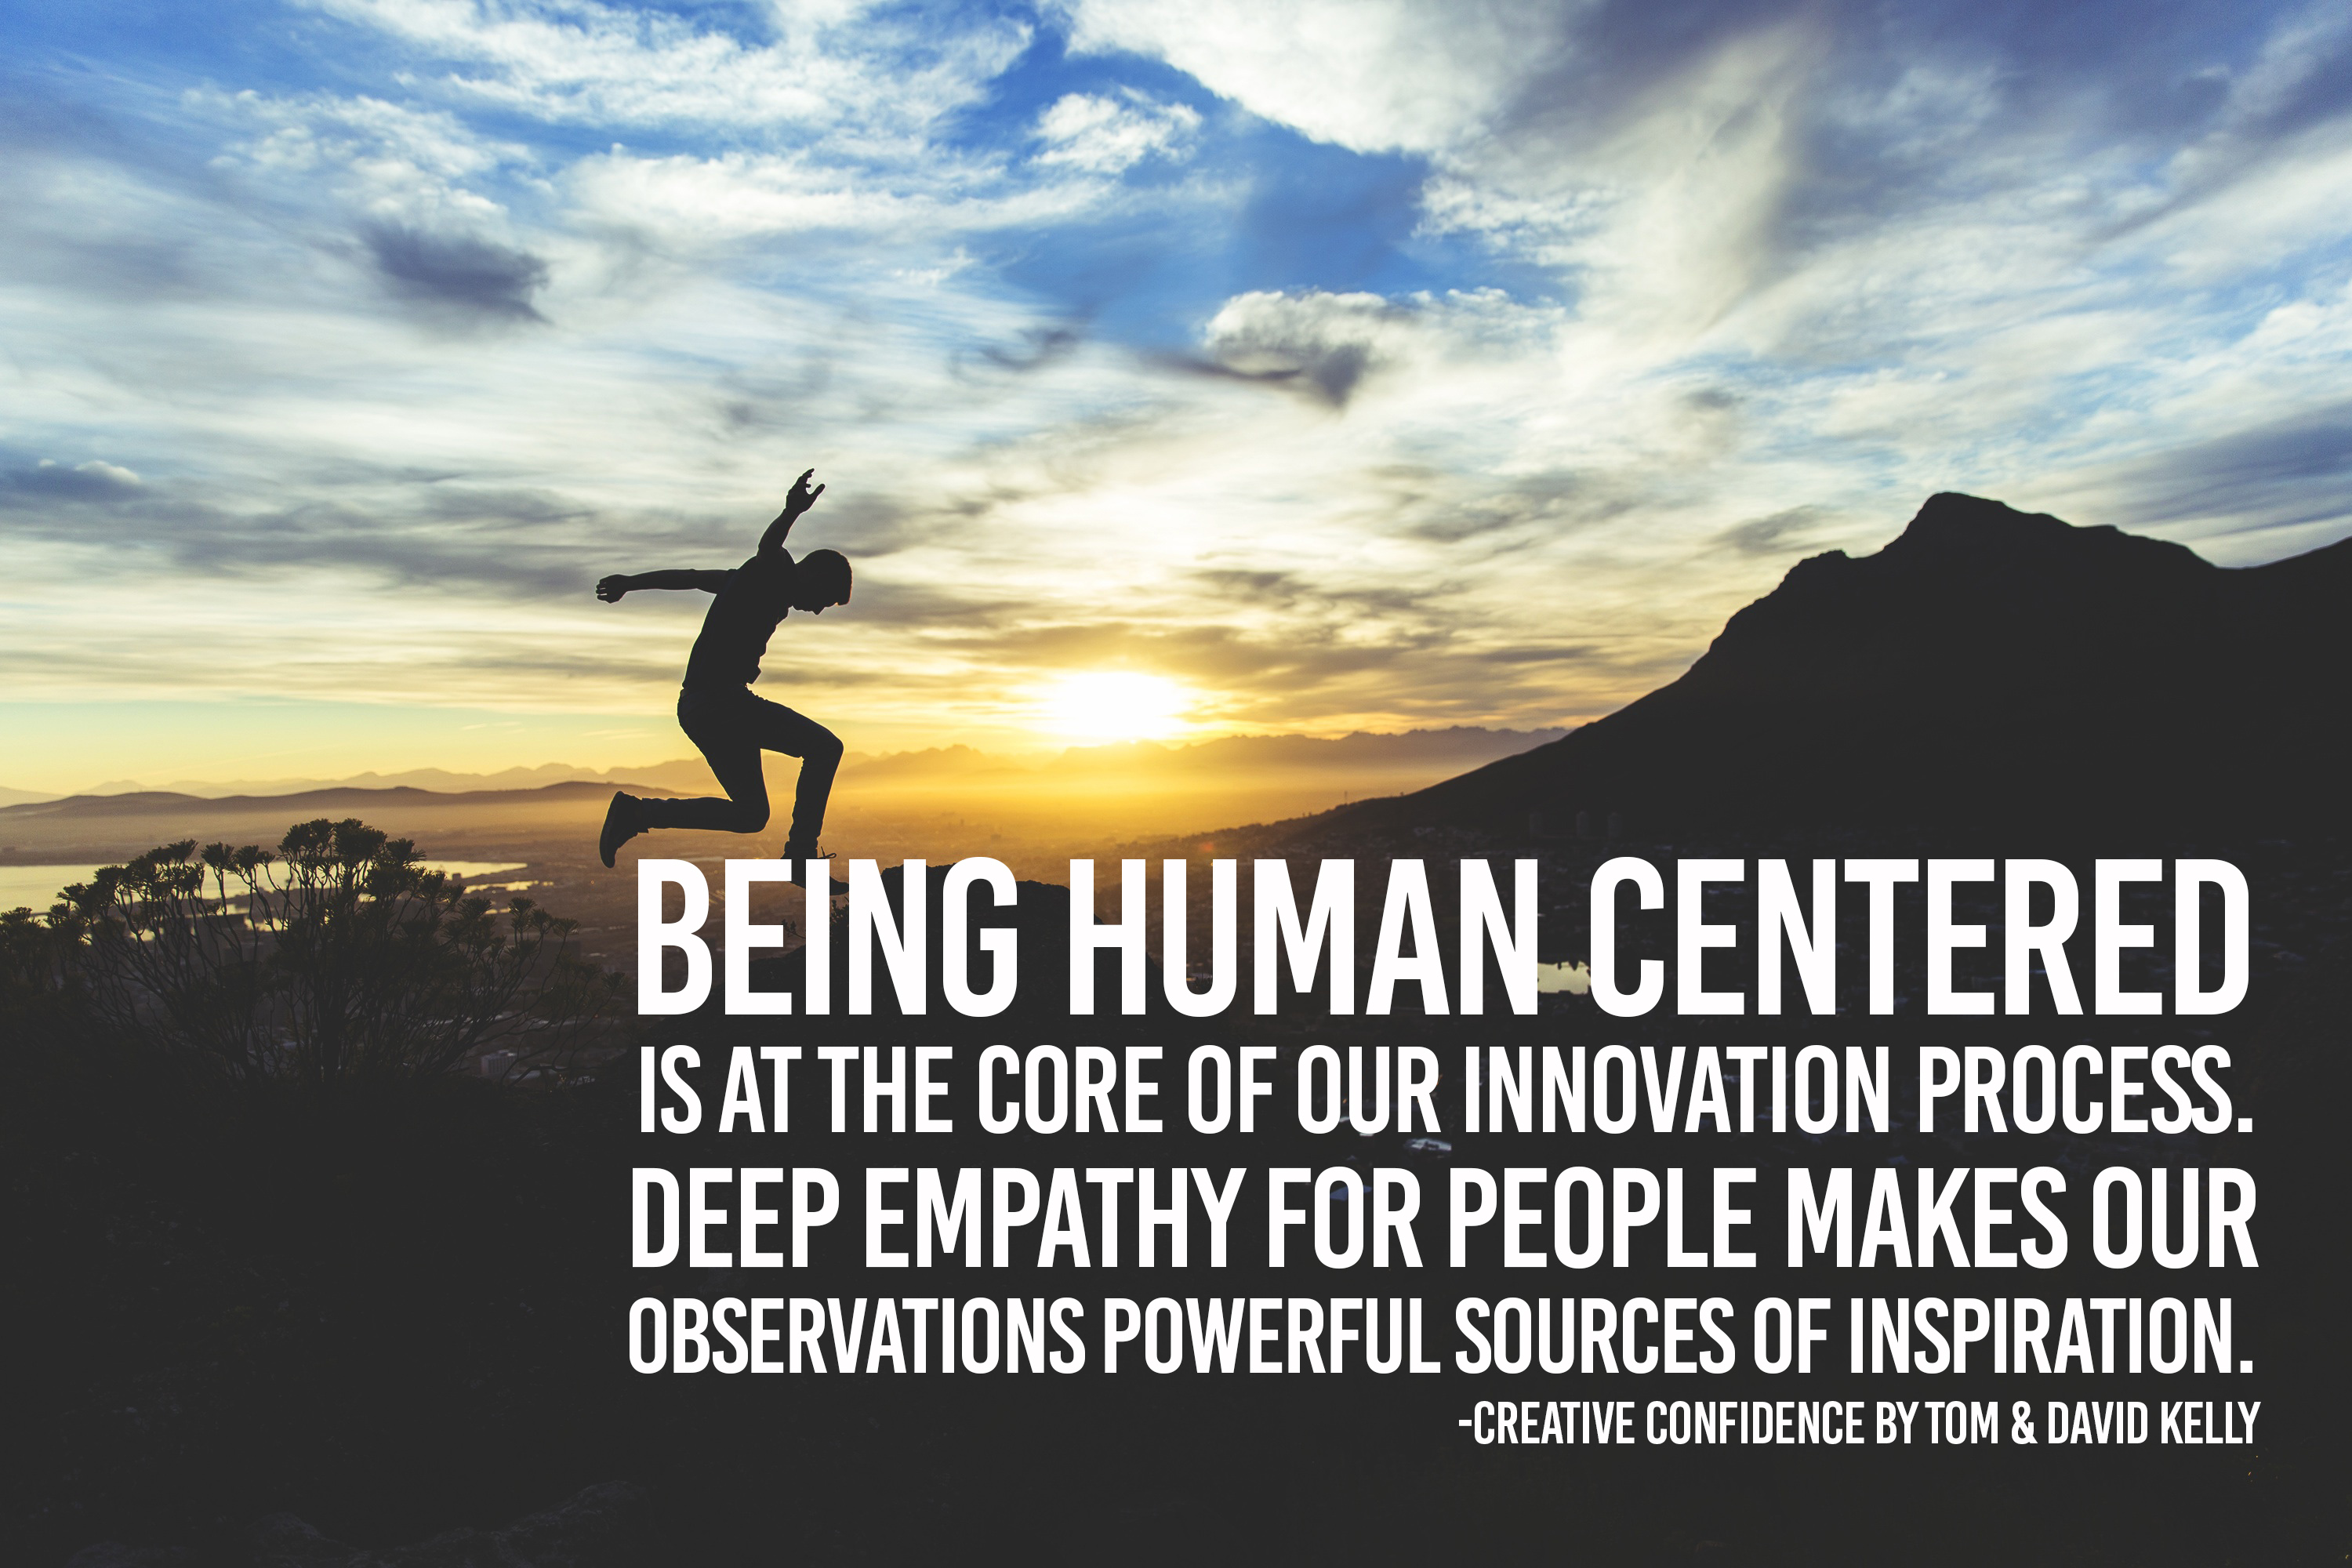 Deep empathy for people makes our observations powerful sources of inspiration